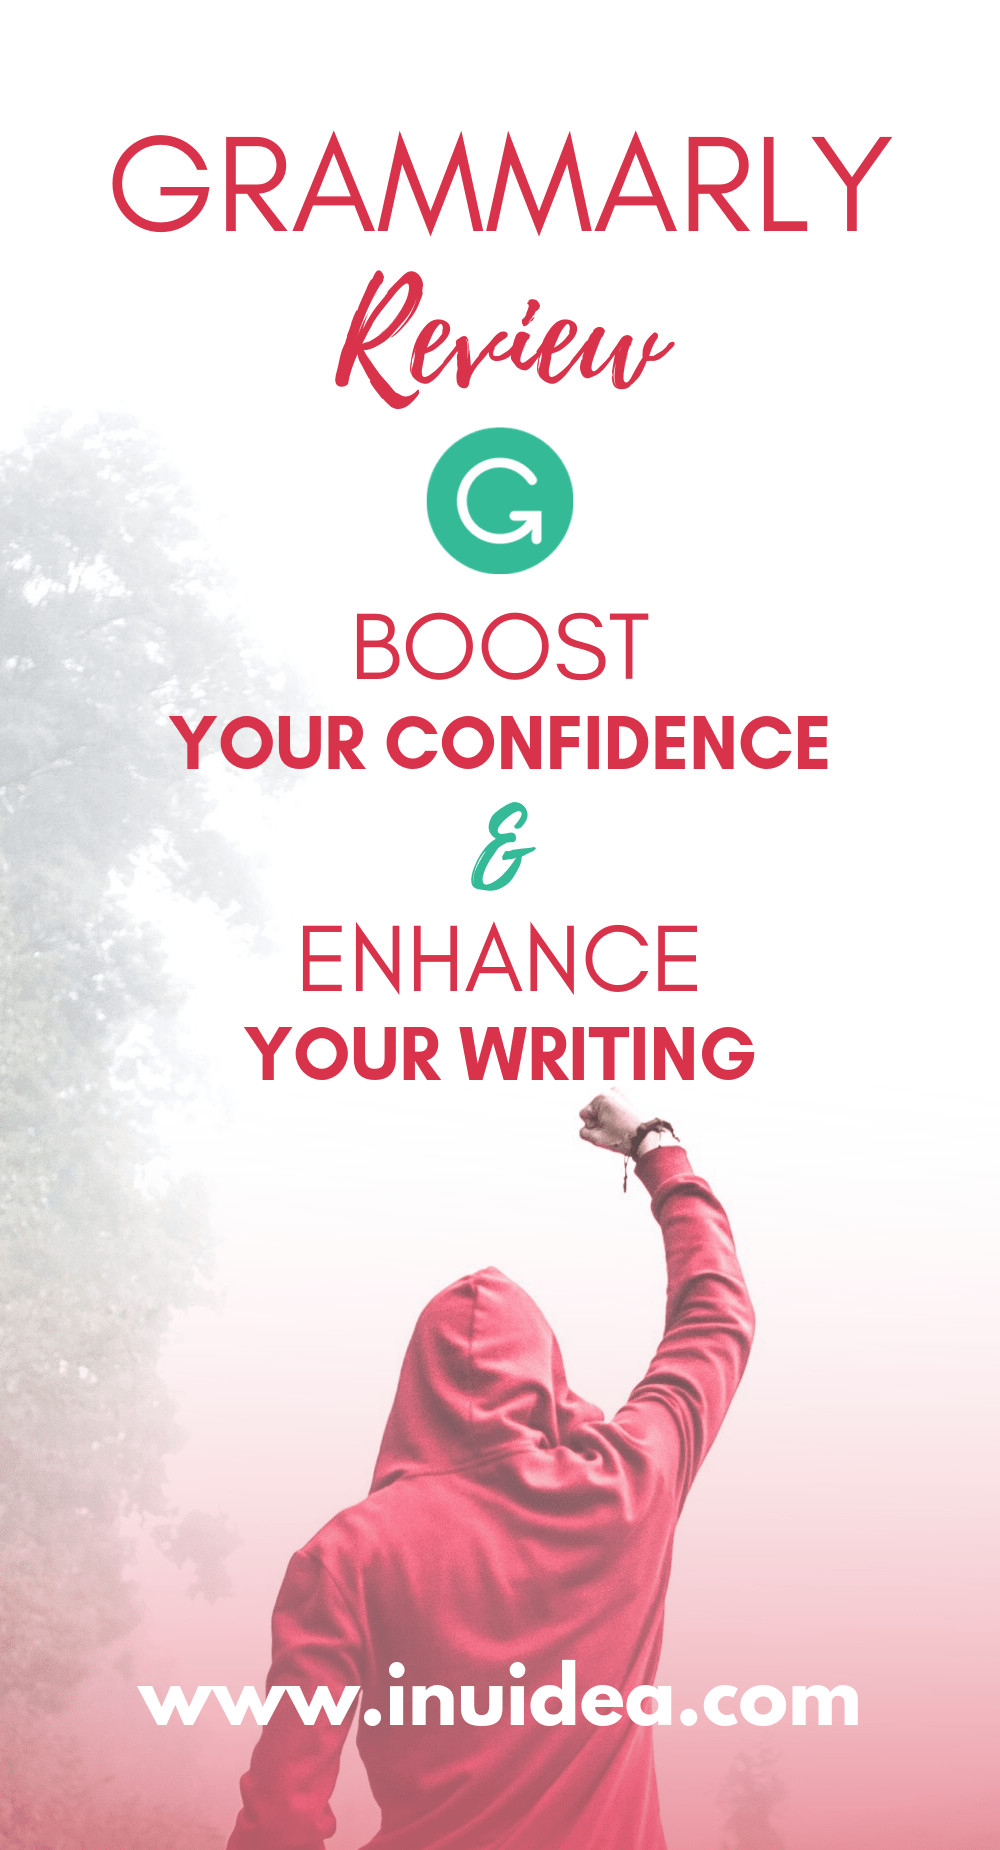 Upgrade Promotional Code Grammarly April 2020